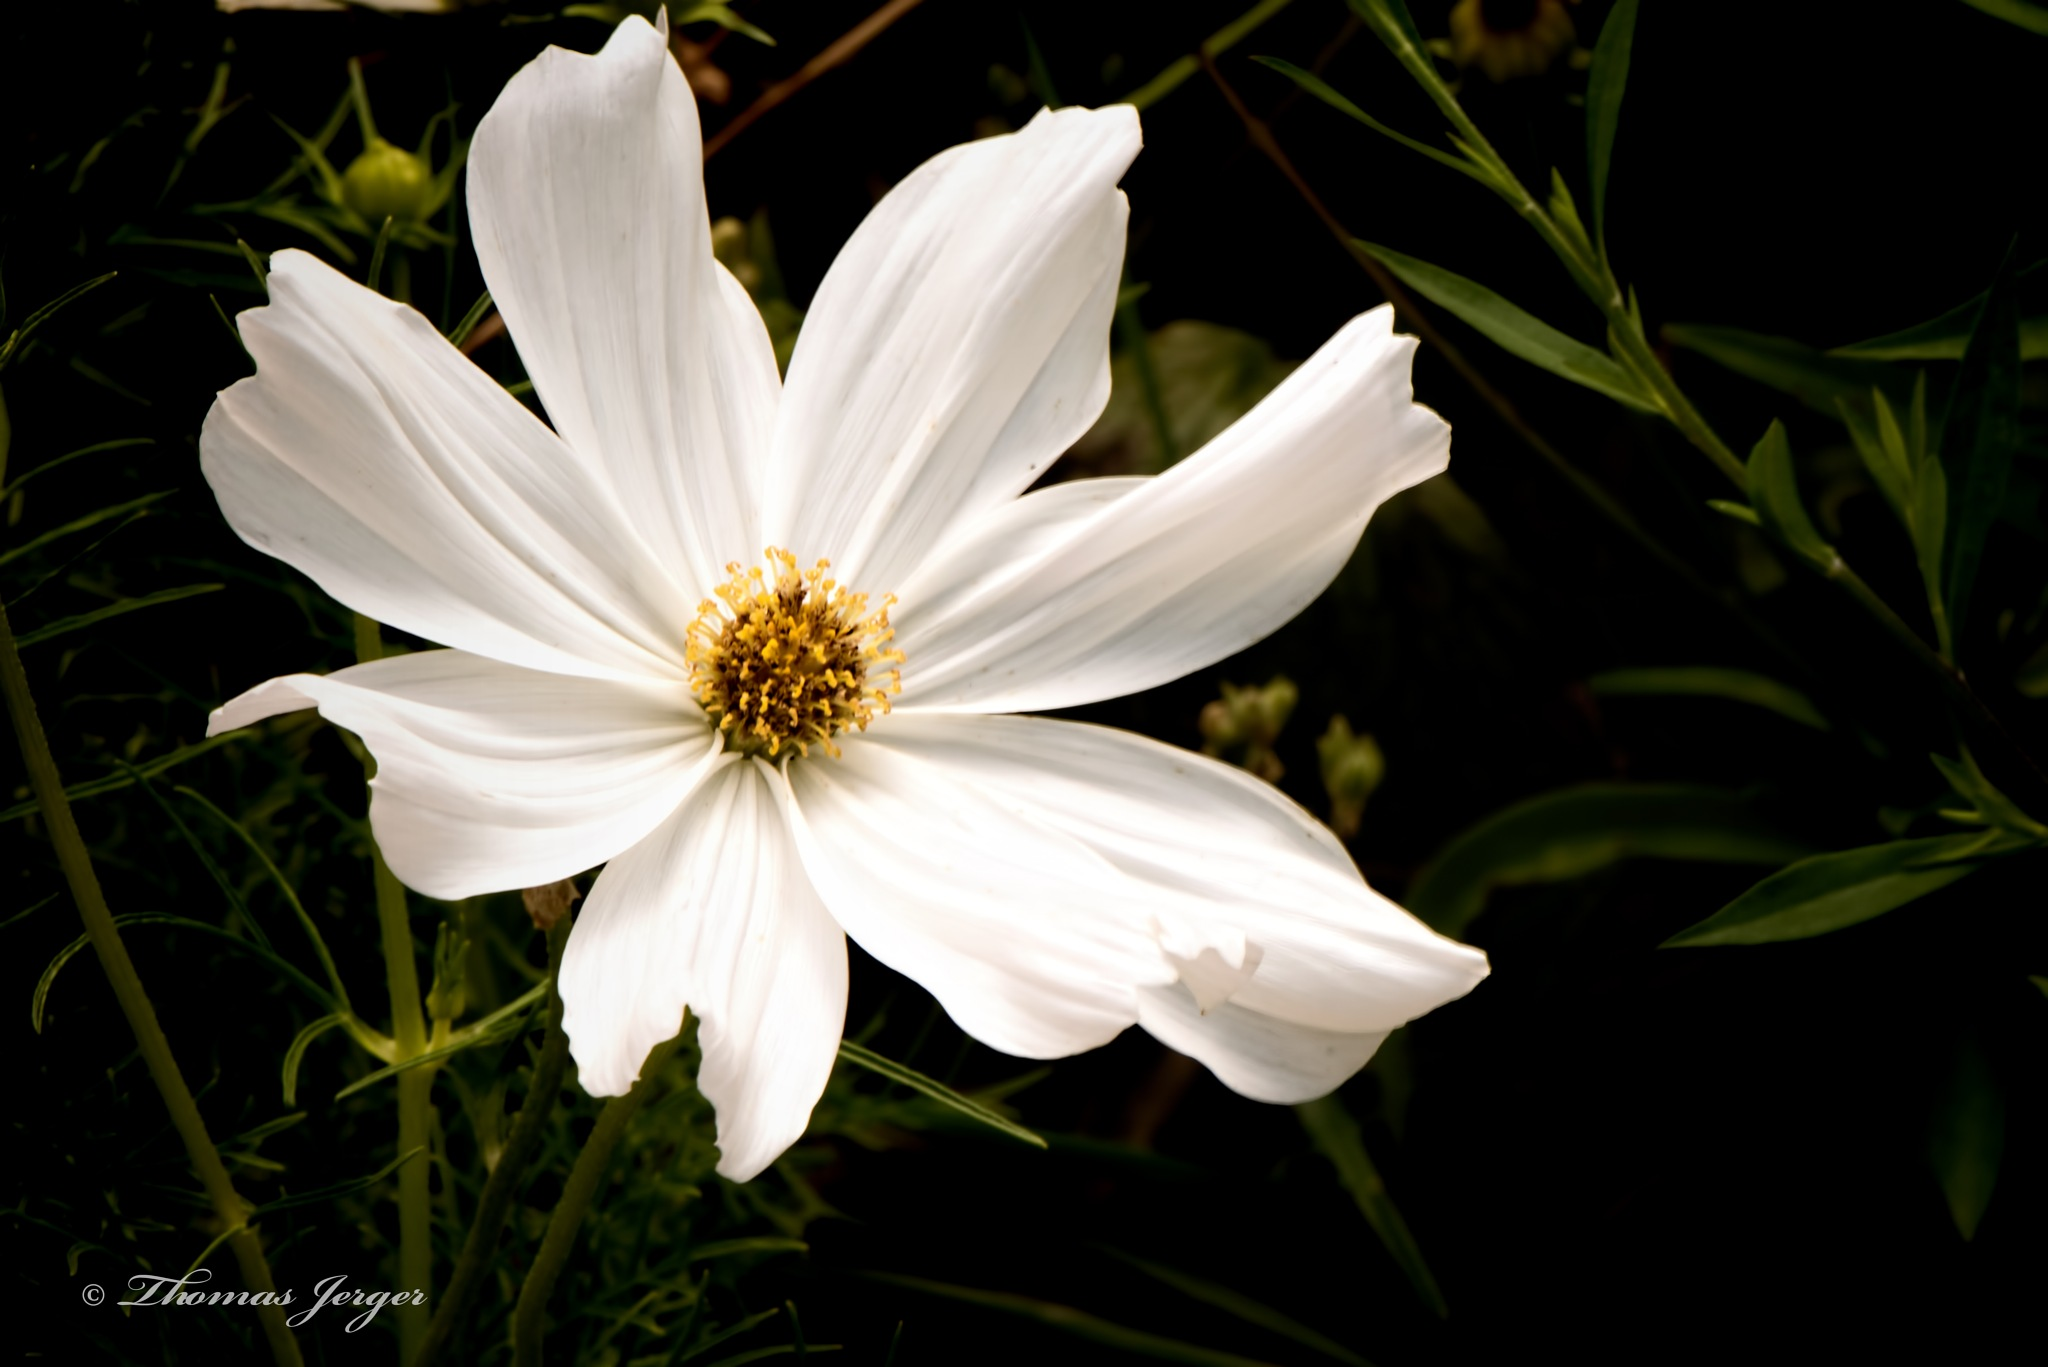 White Cosmos 0731 by ThomasJerger